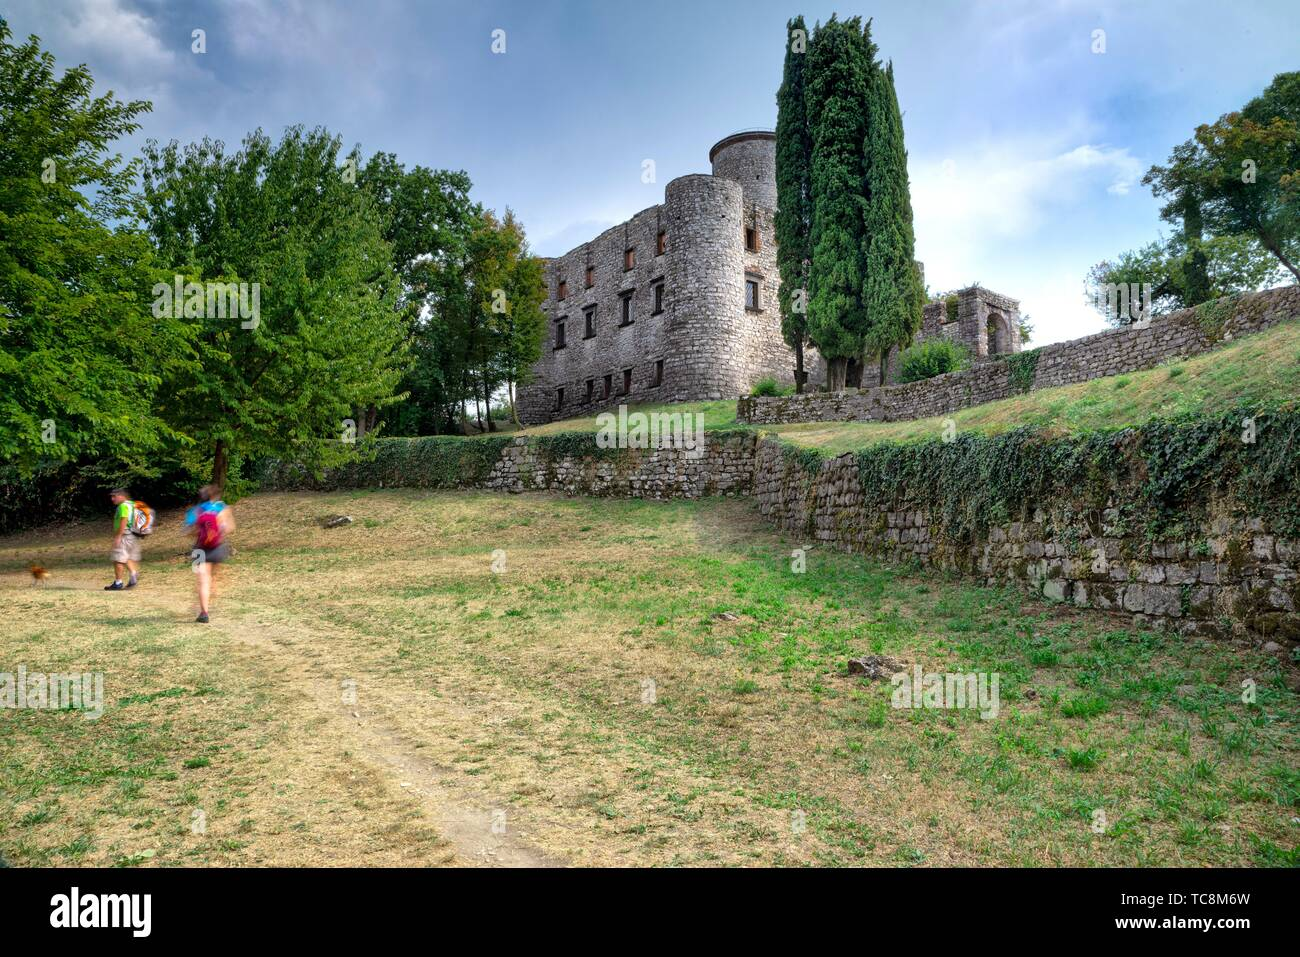 Castle, Monte Isola, Lombardy, Italy - Stock Image